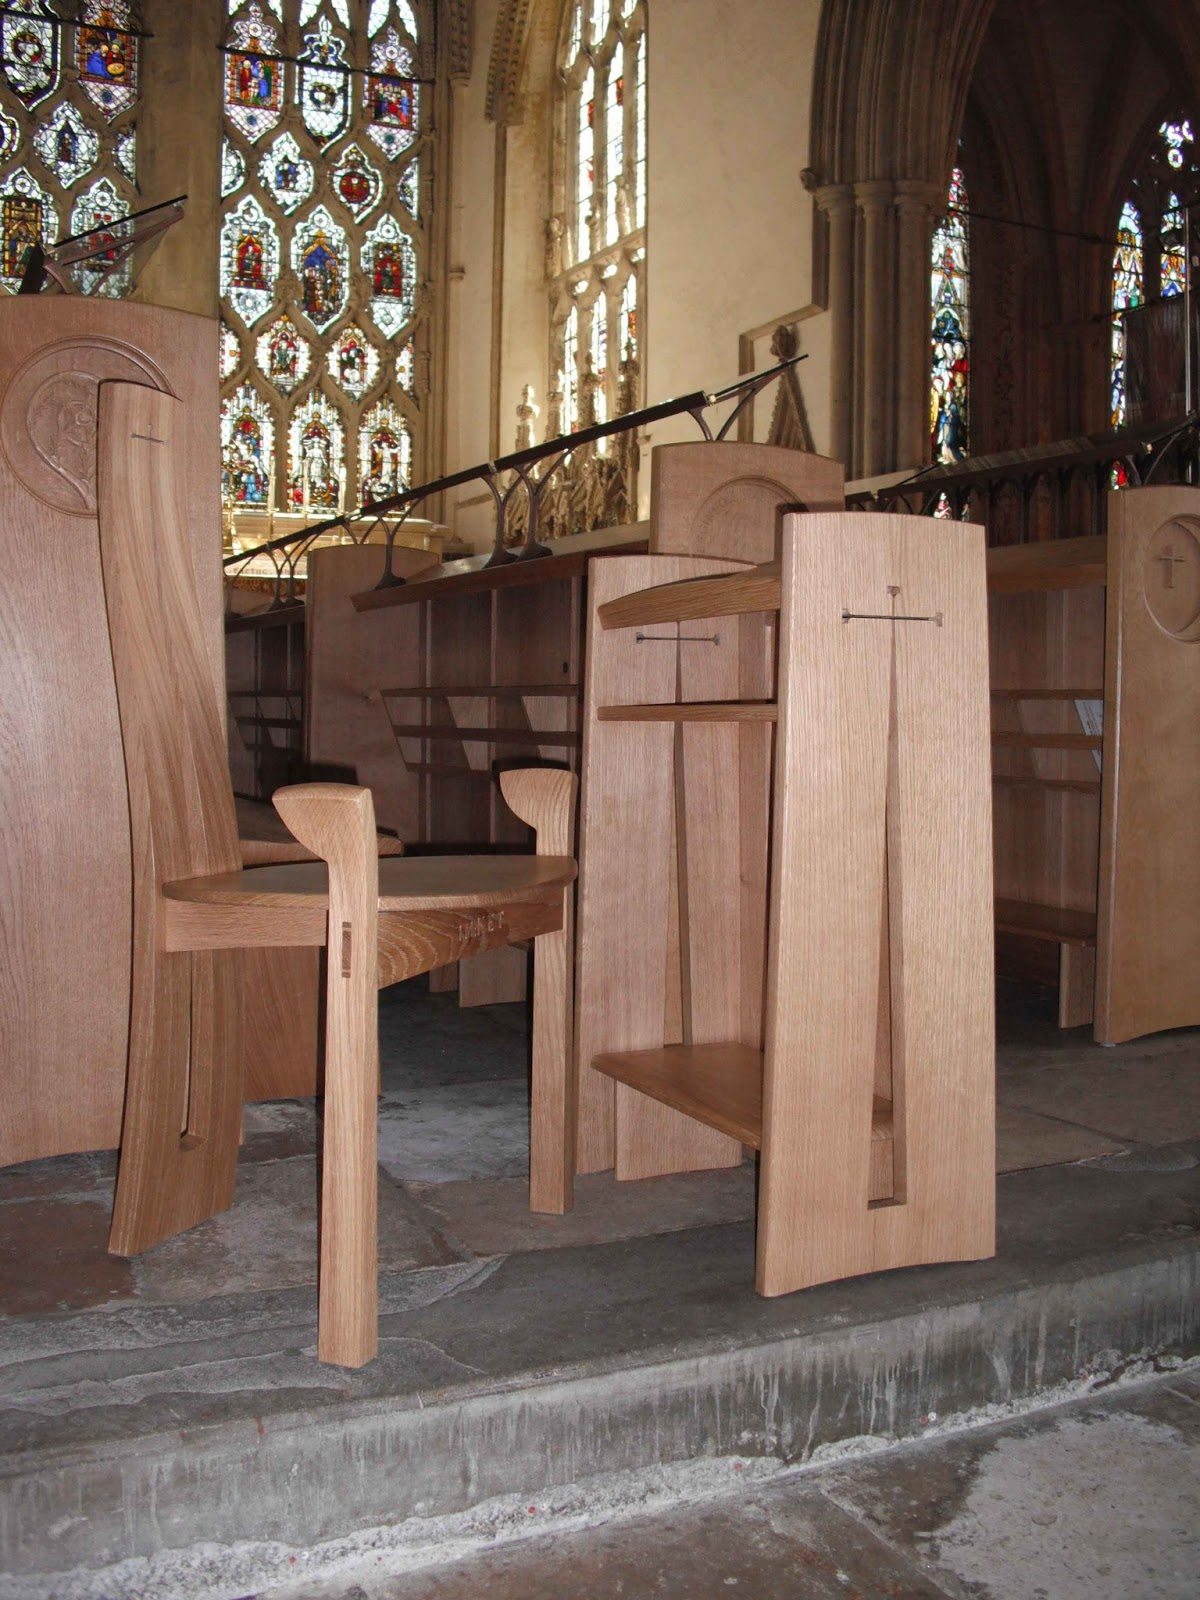 Pastor Pulpit Chairs Folding Resin Philip Koomen Furniture March 2013